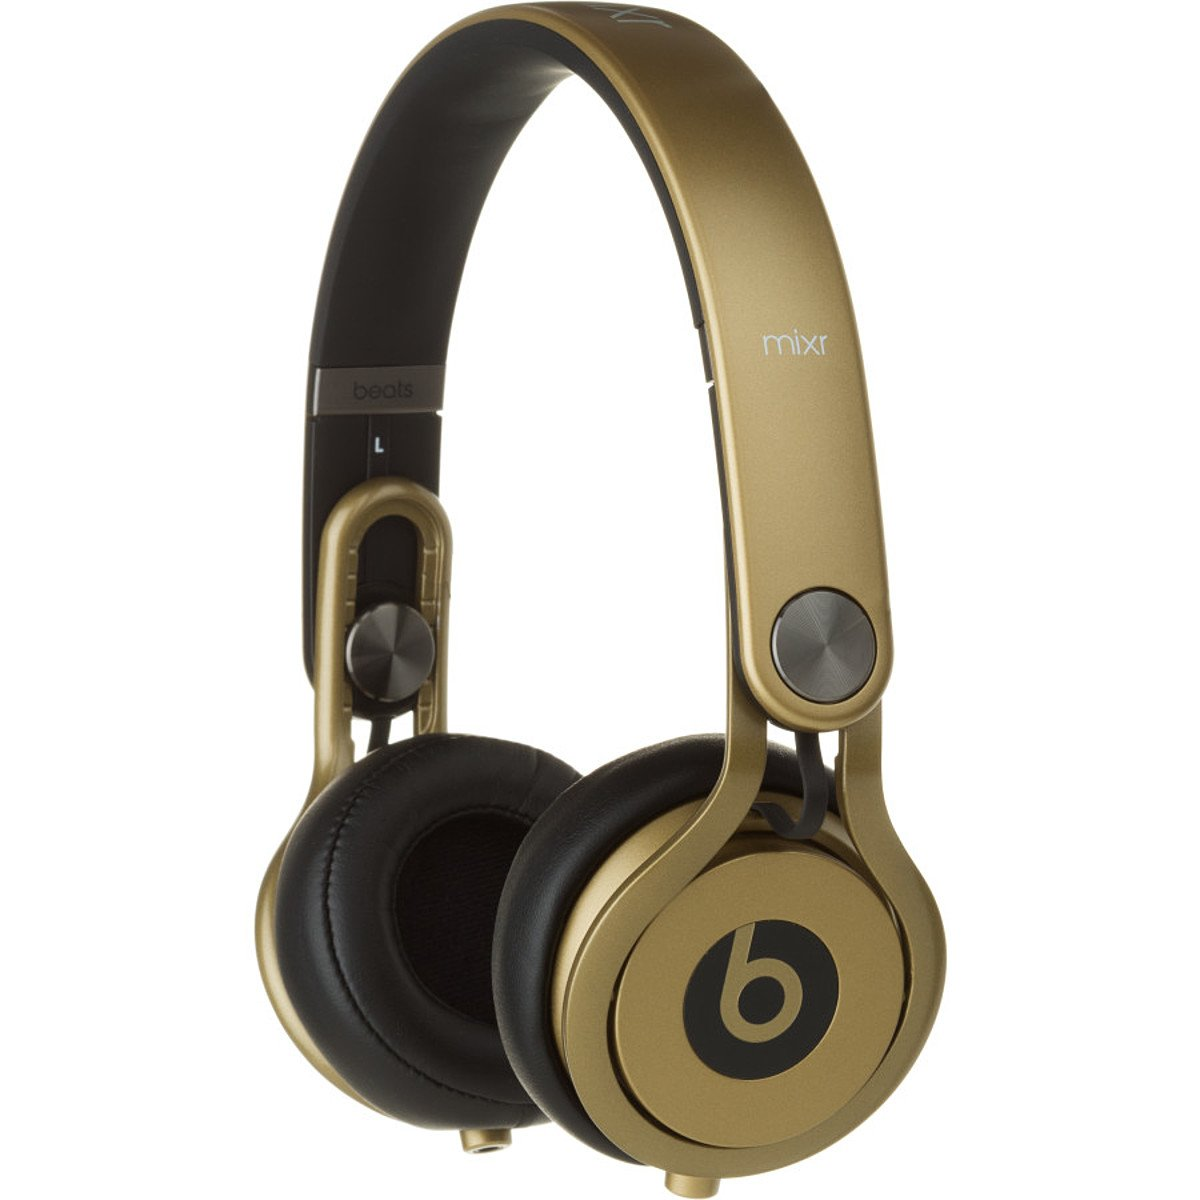 Beats by Dre Mixr On Ear Headphones - (Gold)